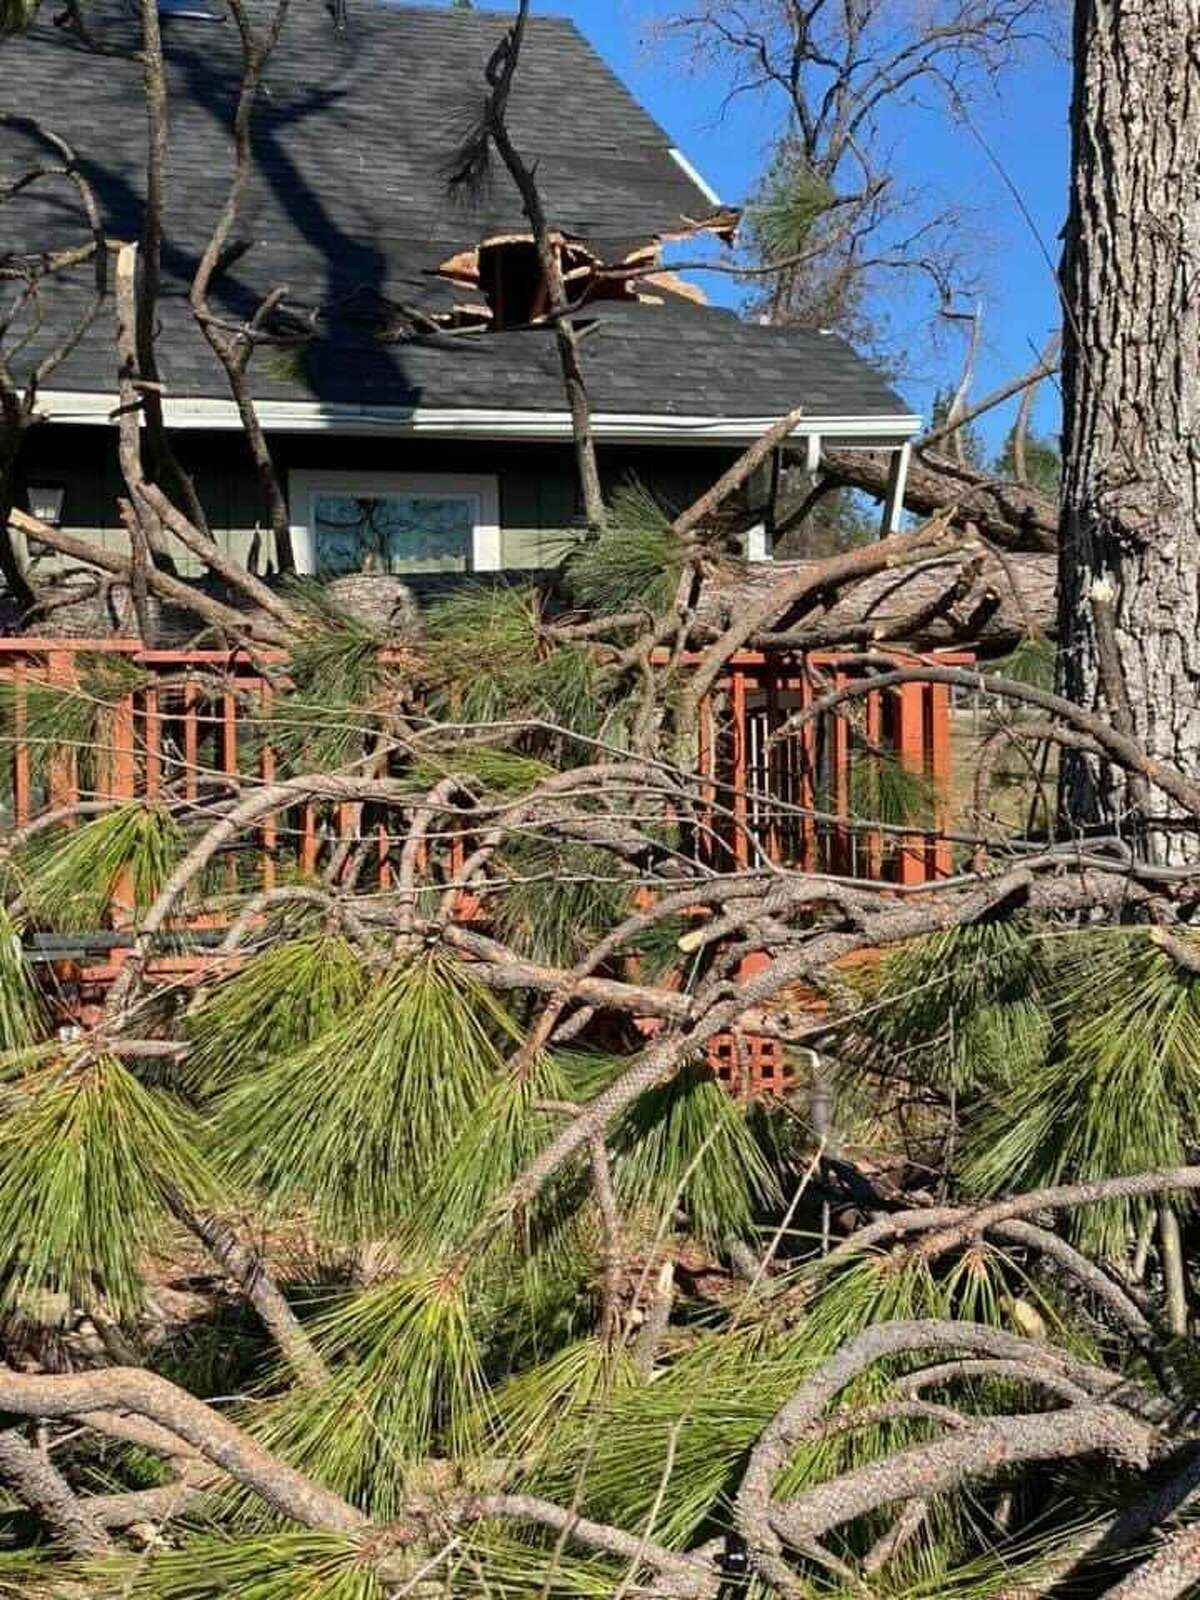 Damage in Mariposa, Calif., after a Jan. 18-19 wind event